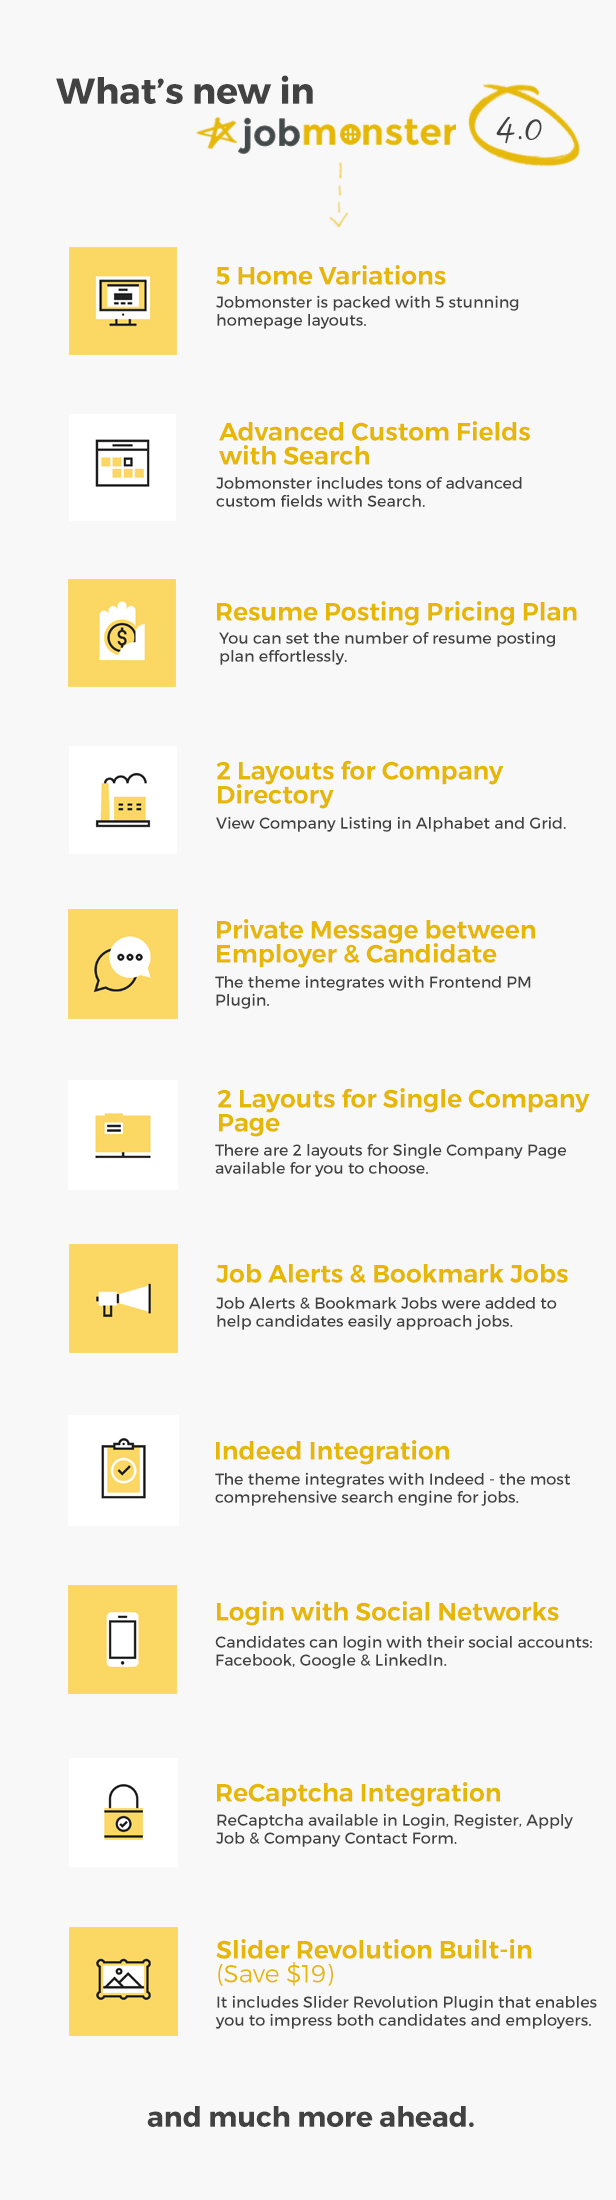 jobmonster job board wordpress theme by nootheme themeforest jobmonster job board wordpress theme jobmonster job board wordpress theme